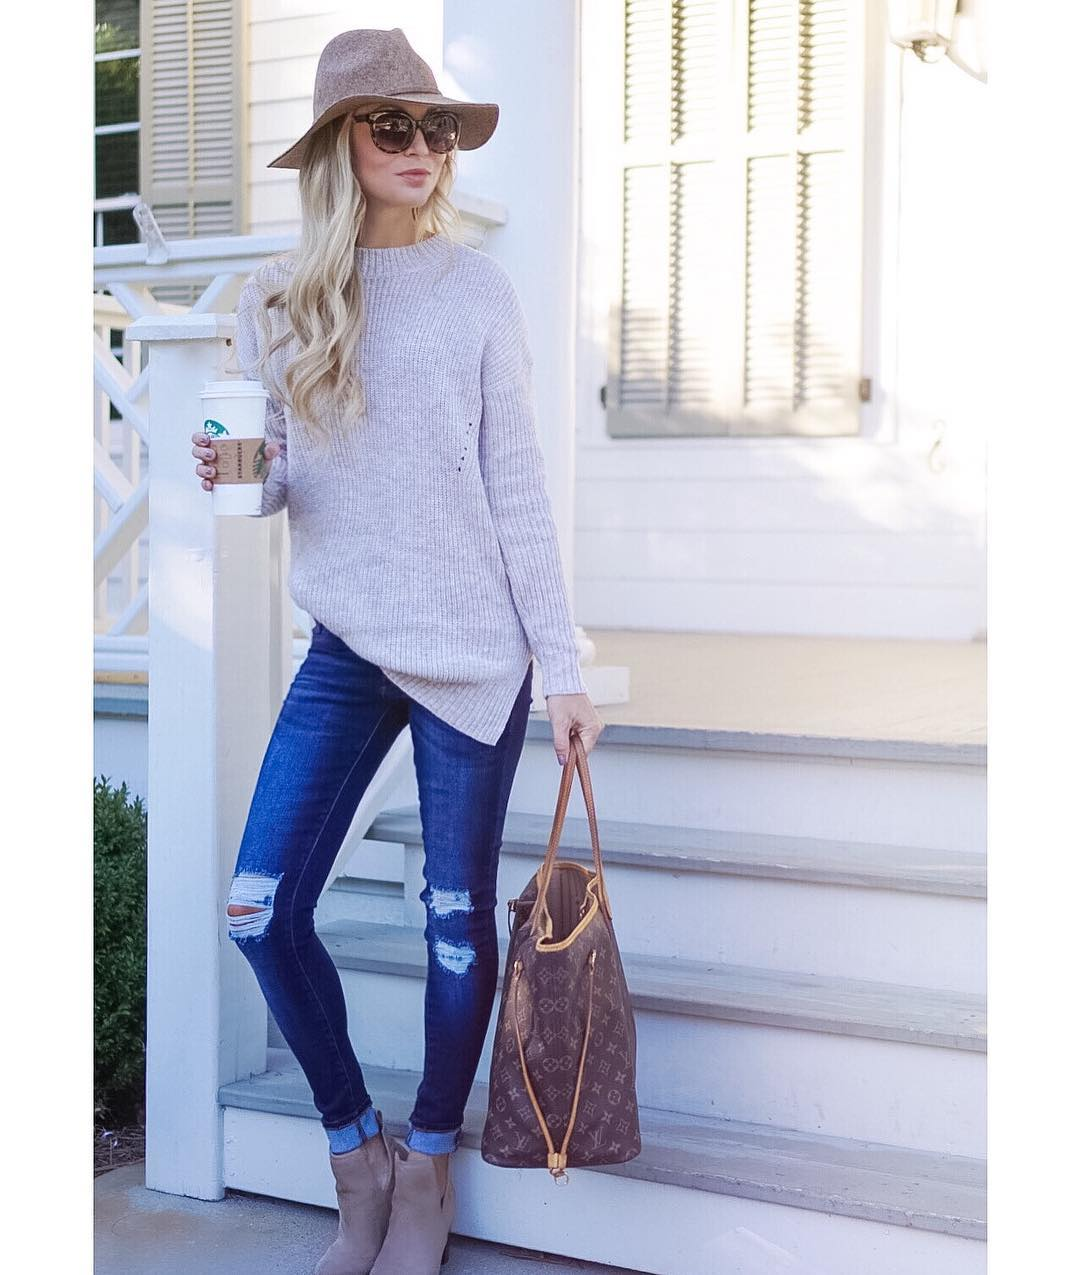 An oversized sweater + ripped jeans = the perfect fall outfit! http://liketk.it/2pnuH {This sweater is under $40 and it was so soft I ordered it in several colors!!} #liketkitunder50 #liketkit #fall #fallfashion #ootd #wiw #sweaterweather